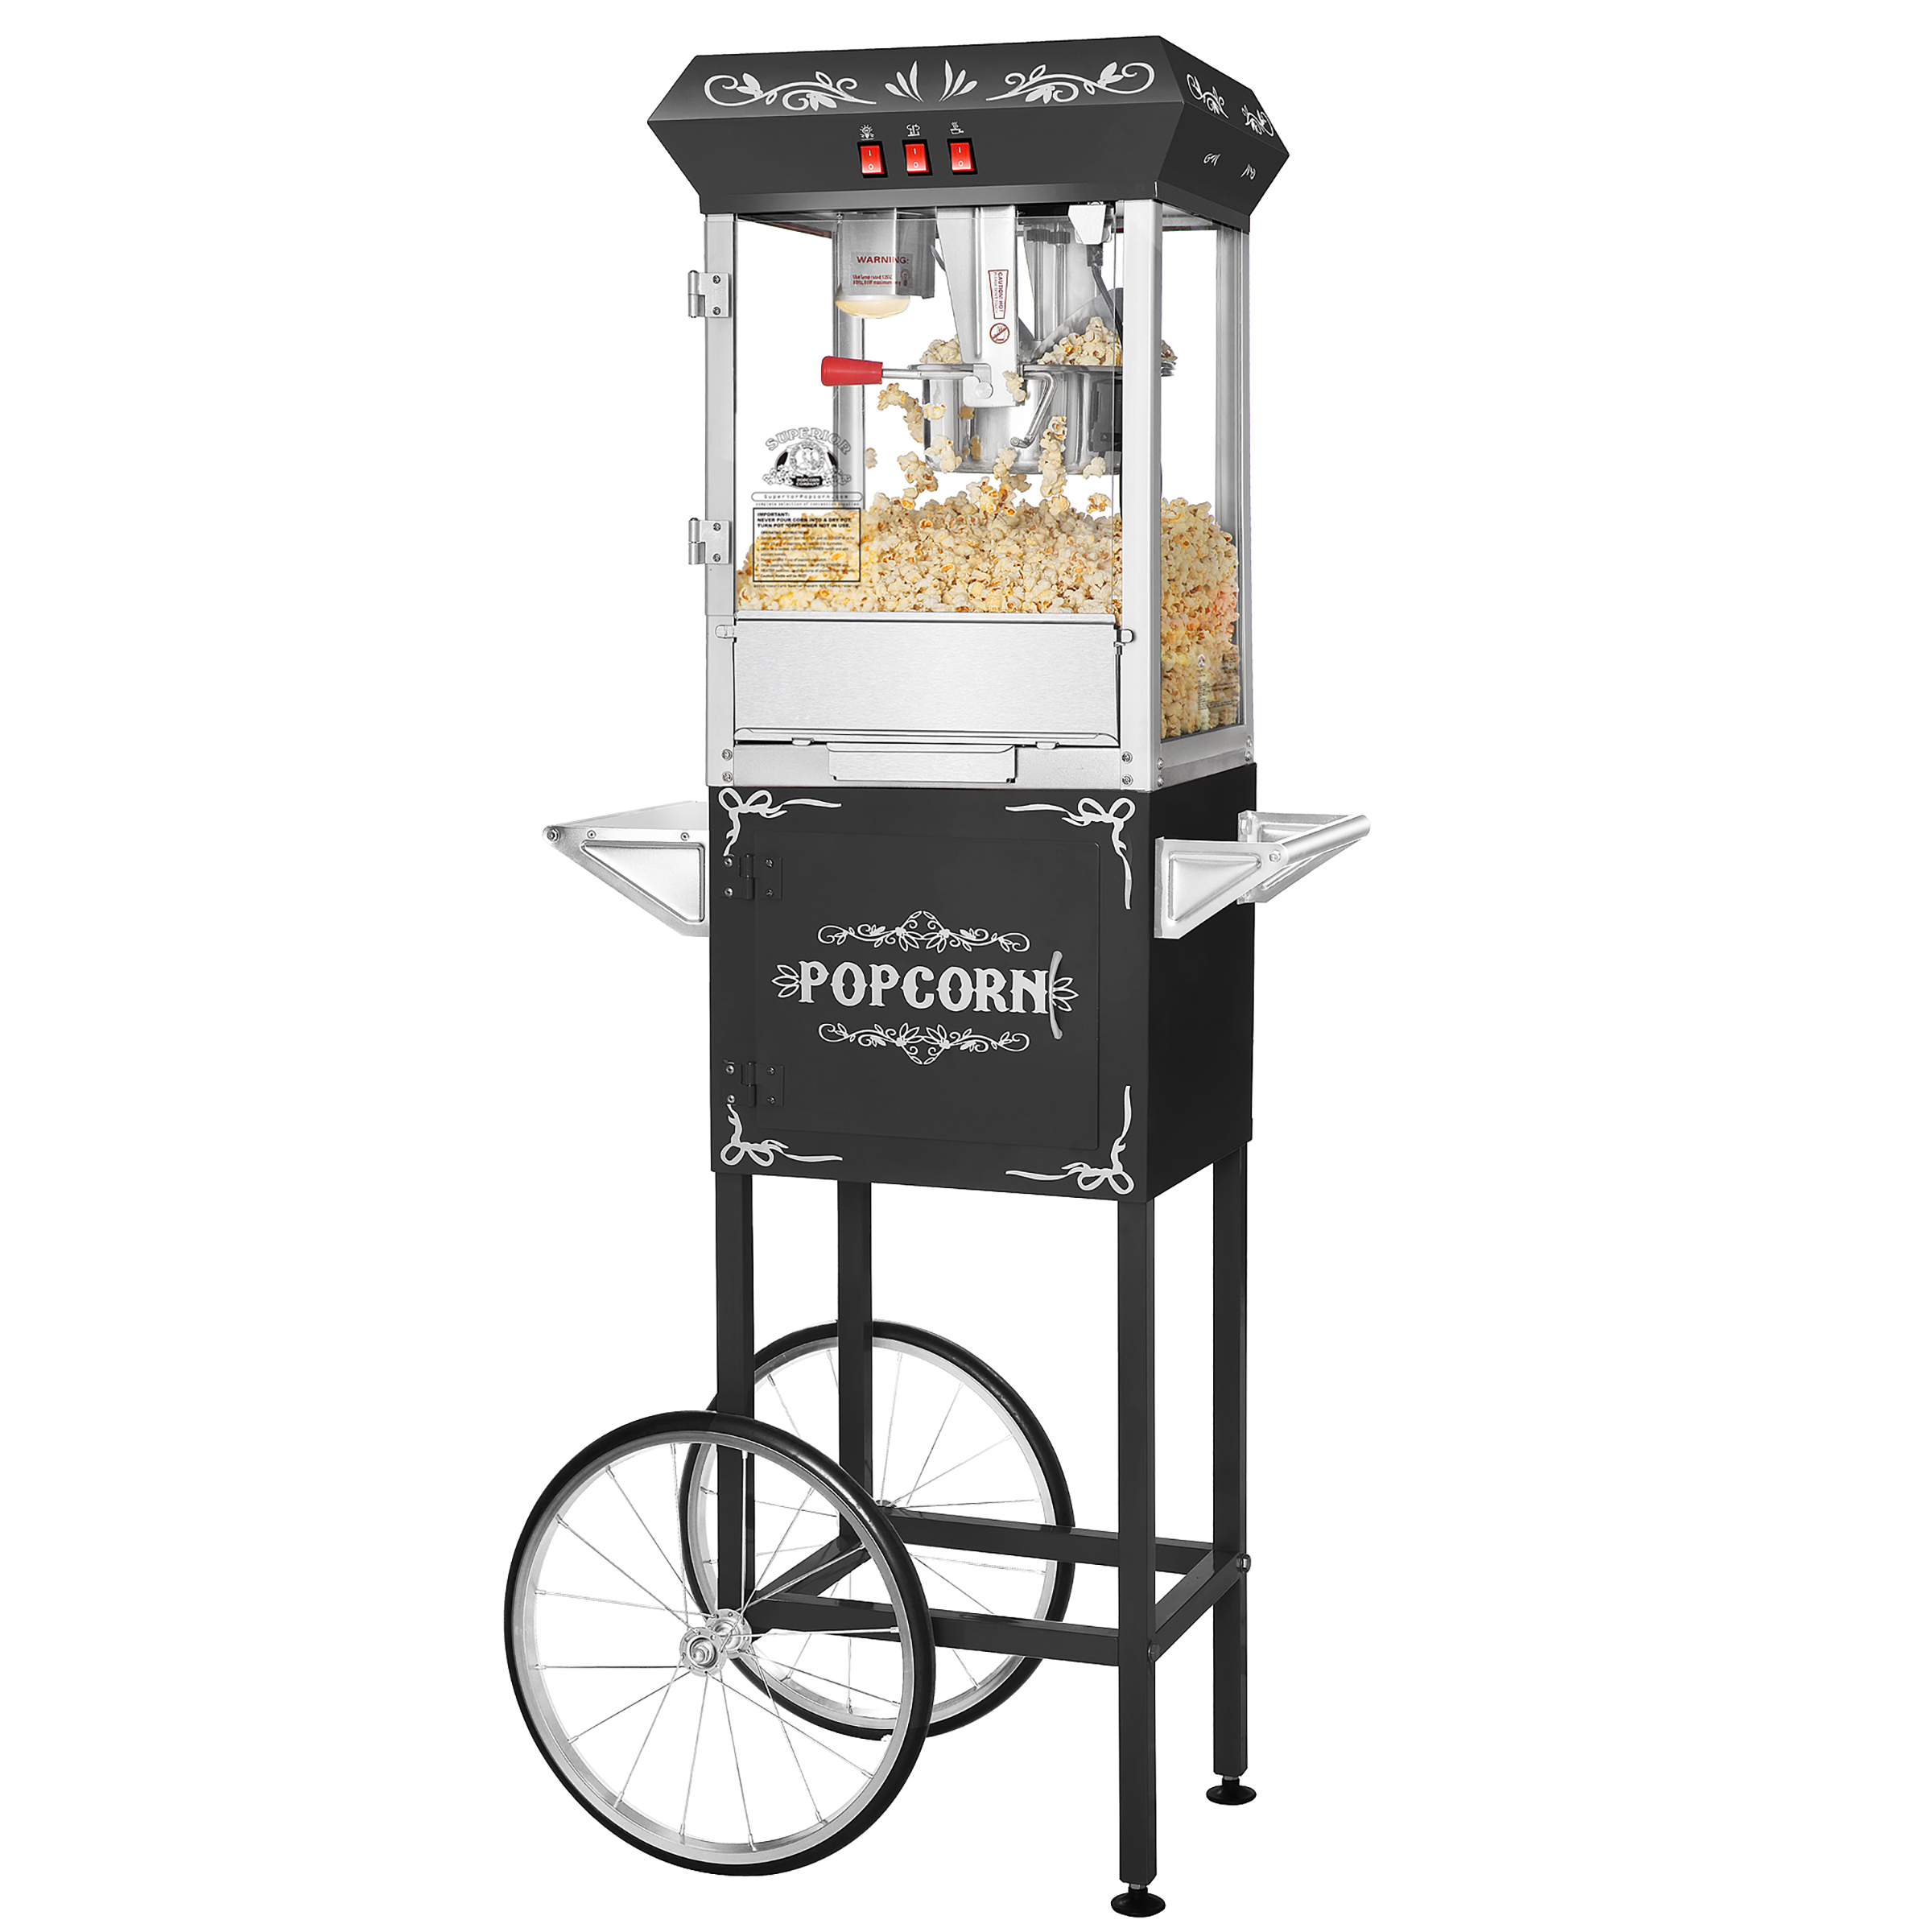 Movie Night Popcorn Popper Machine With Cart by Superior Popcorn Company